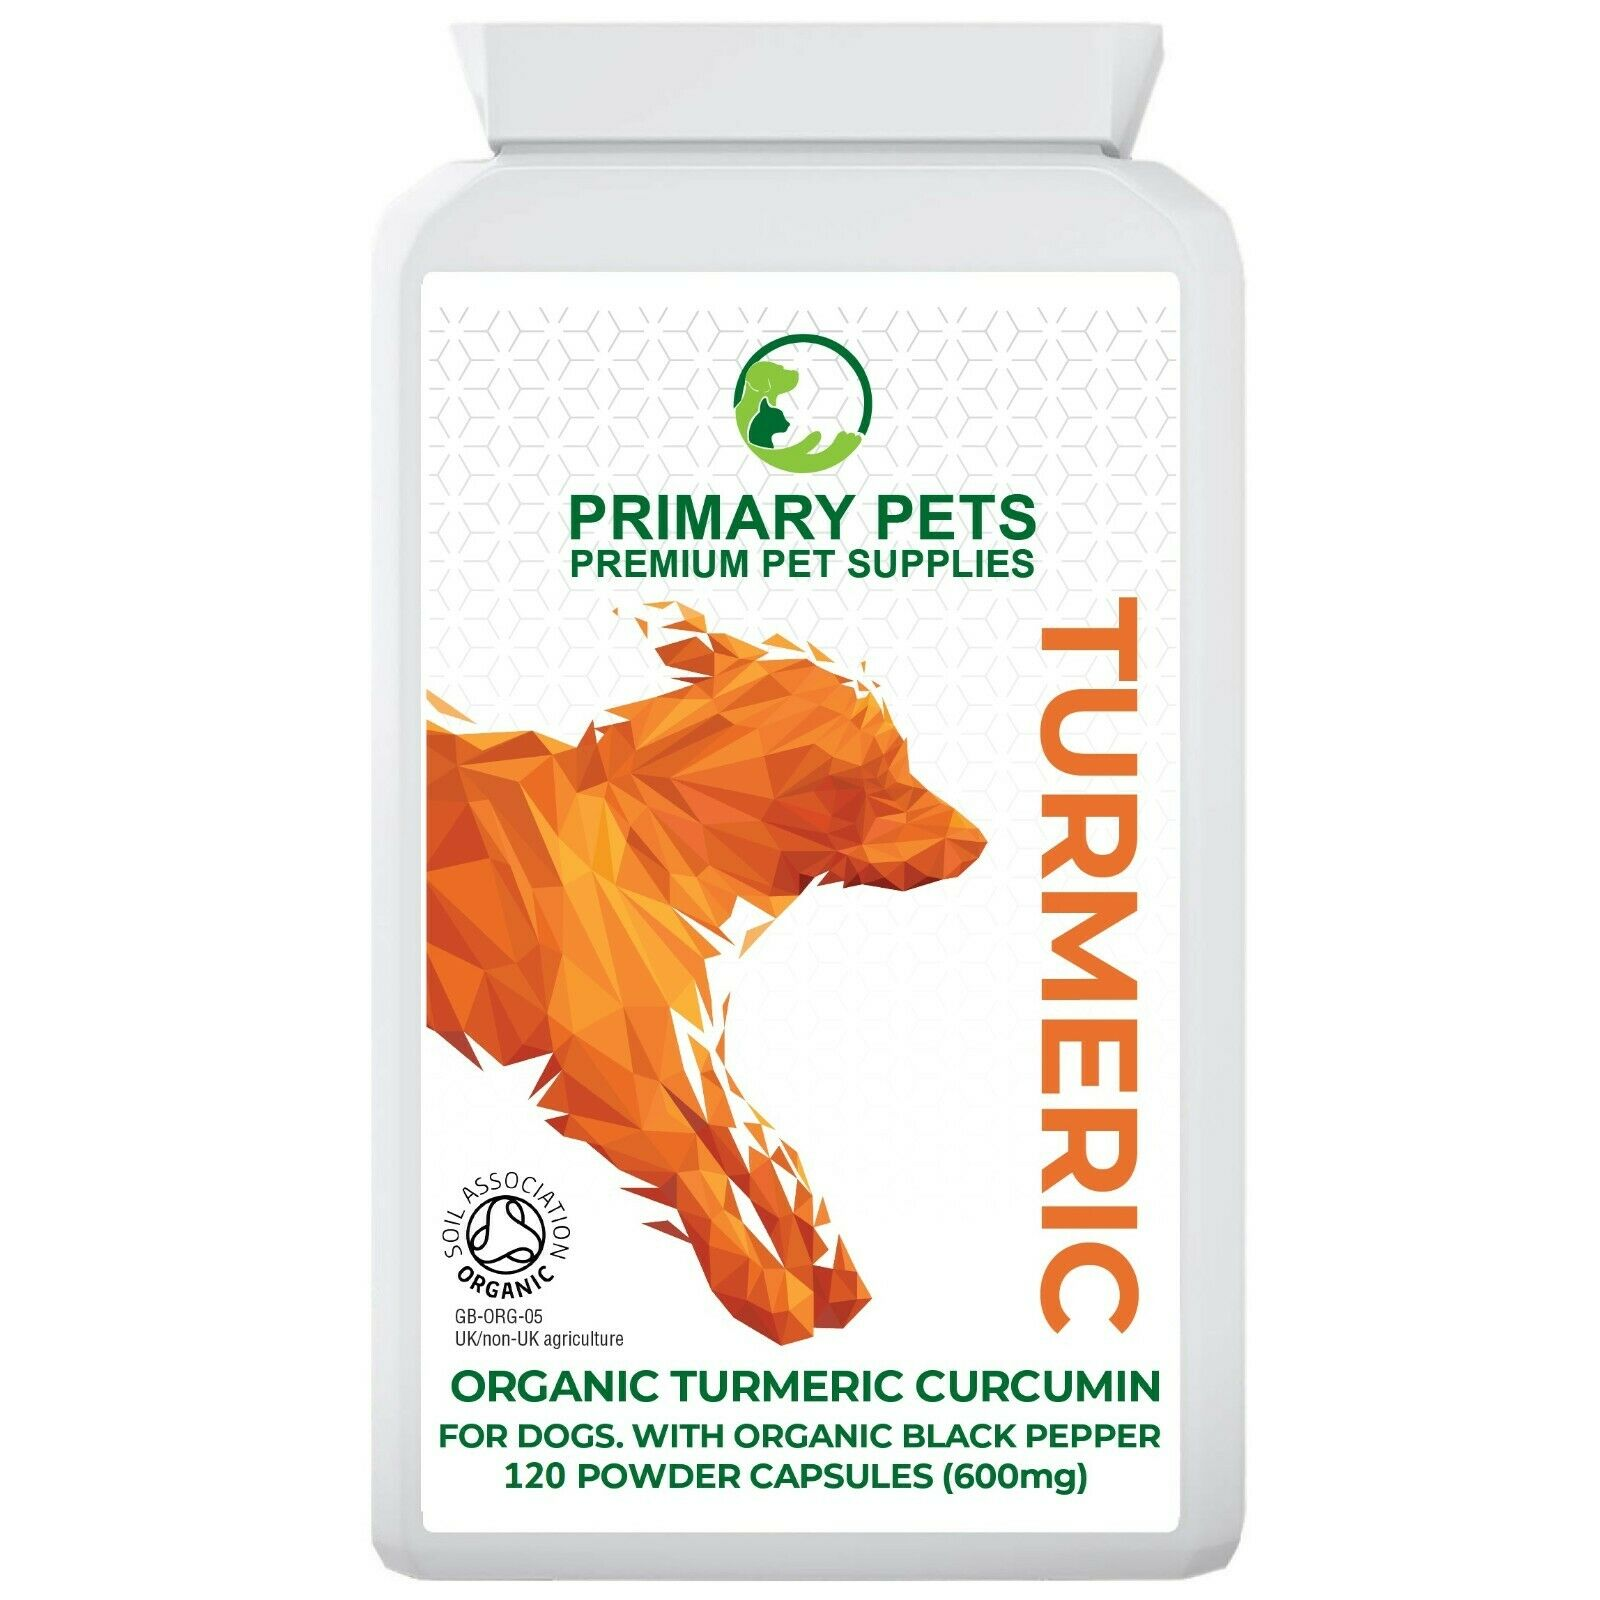 Golden paste for dogs, 120 Organic Turmeric Capsules, Digestion & Joint Health.